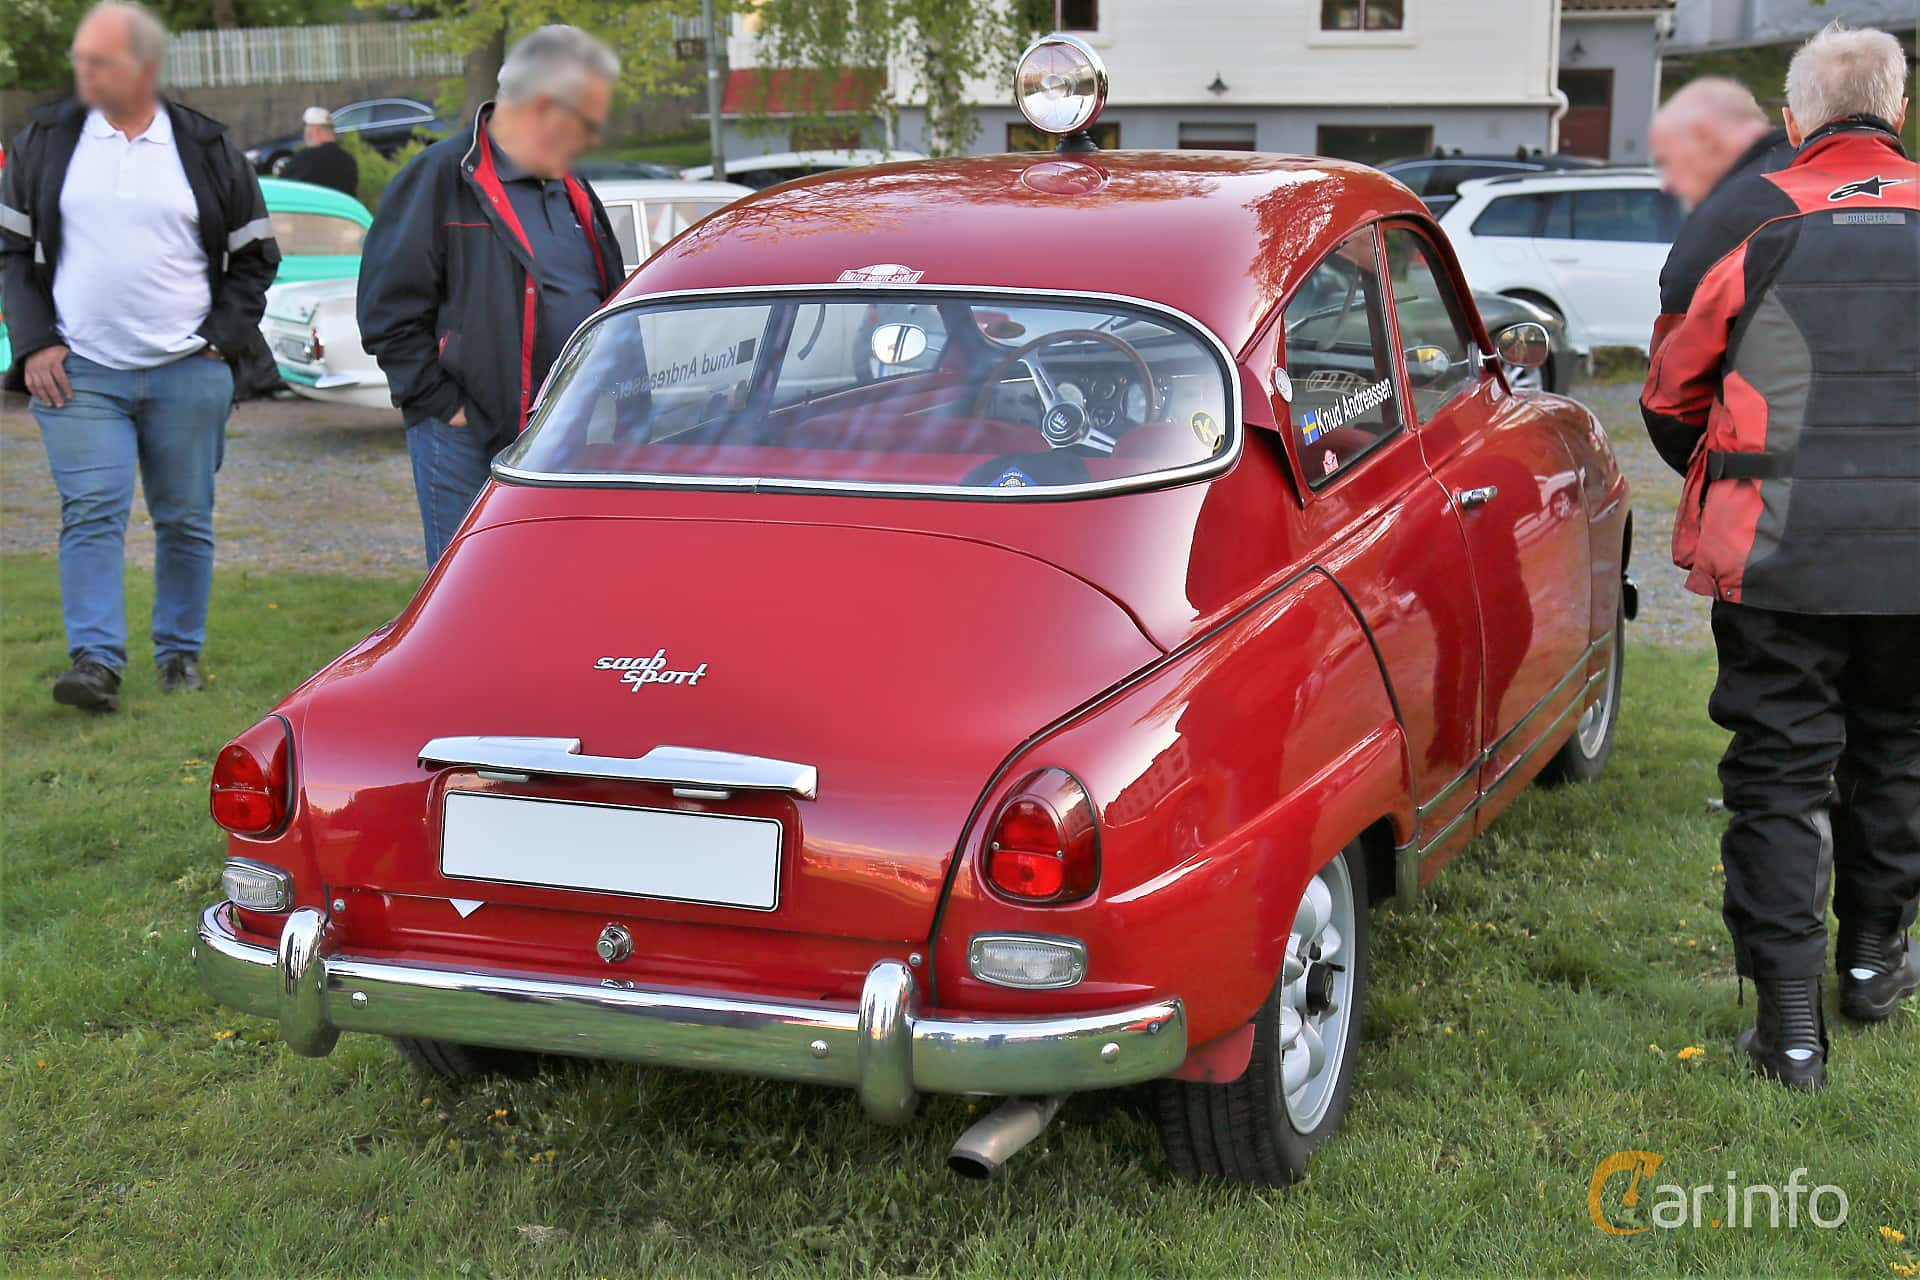 Saab 96 0.8 Manual, 38hp, 1964